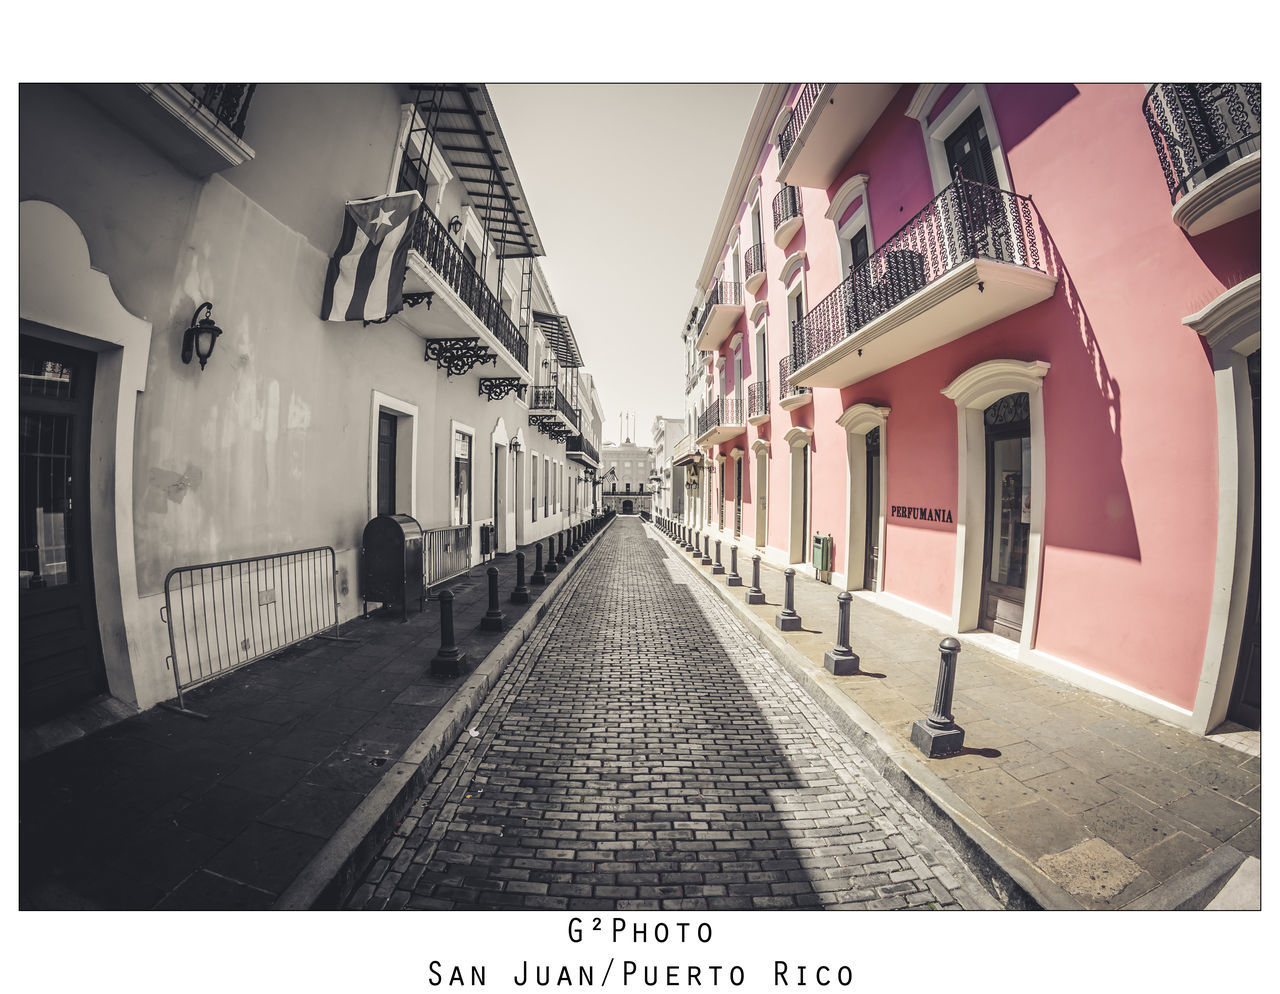 G2Photo; Puerto Rico - San Juan Puerto Rico Sanjuan Lanscape Photography Lanscape Canon T3i Bestoftheday Bestphoto Bestpic Bestpicture FirstPhoto  Newuseroneyeem First Eyeem Photo